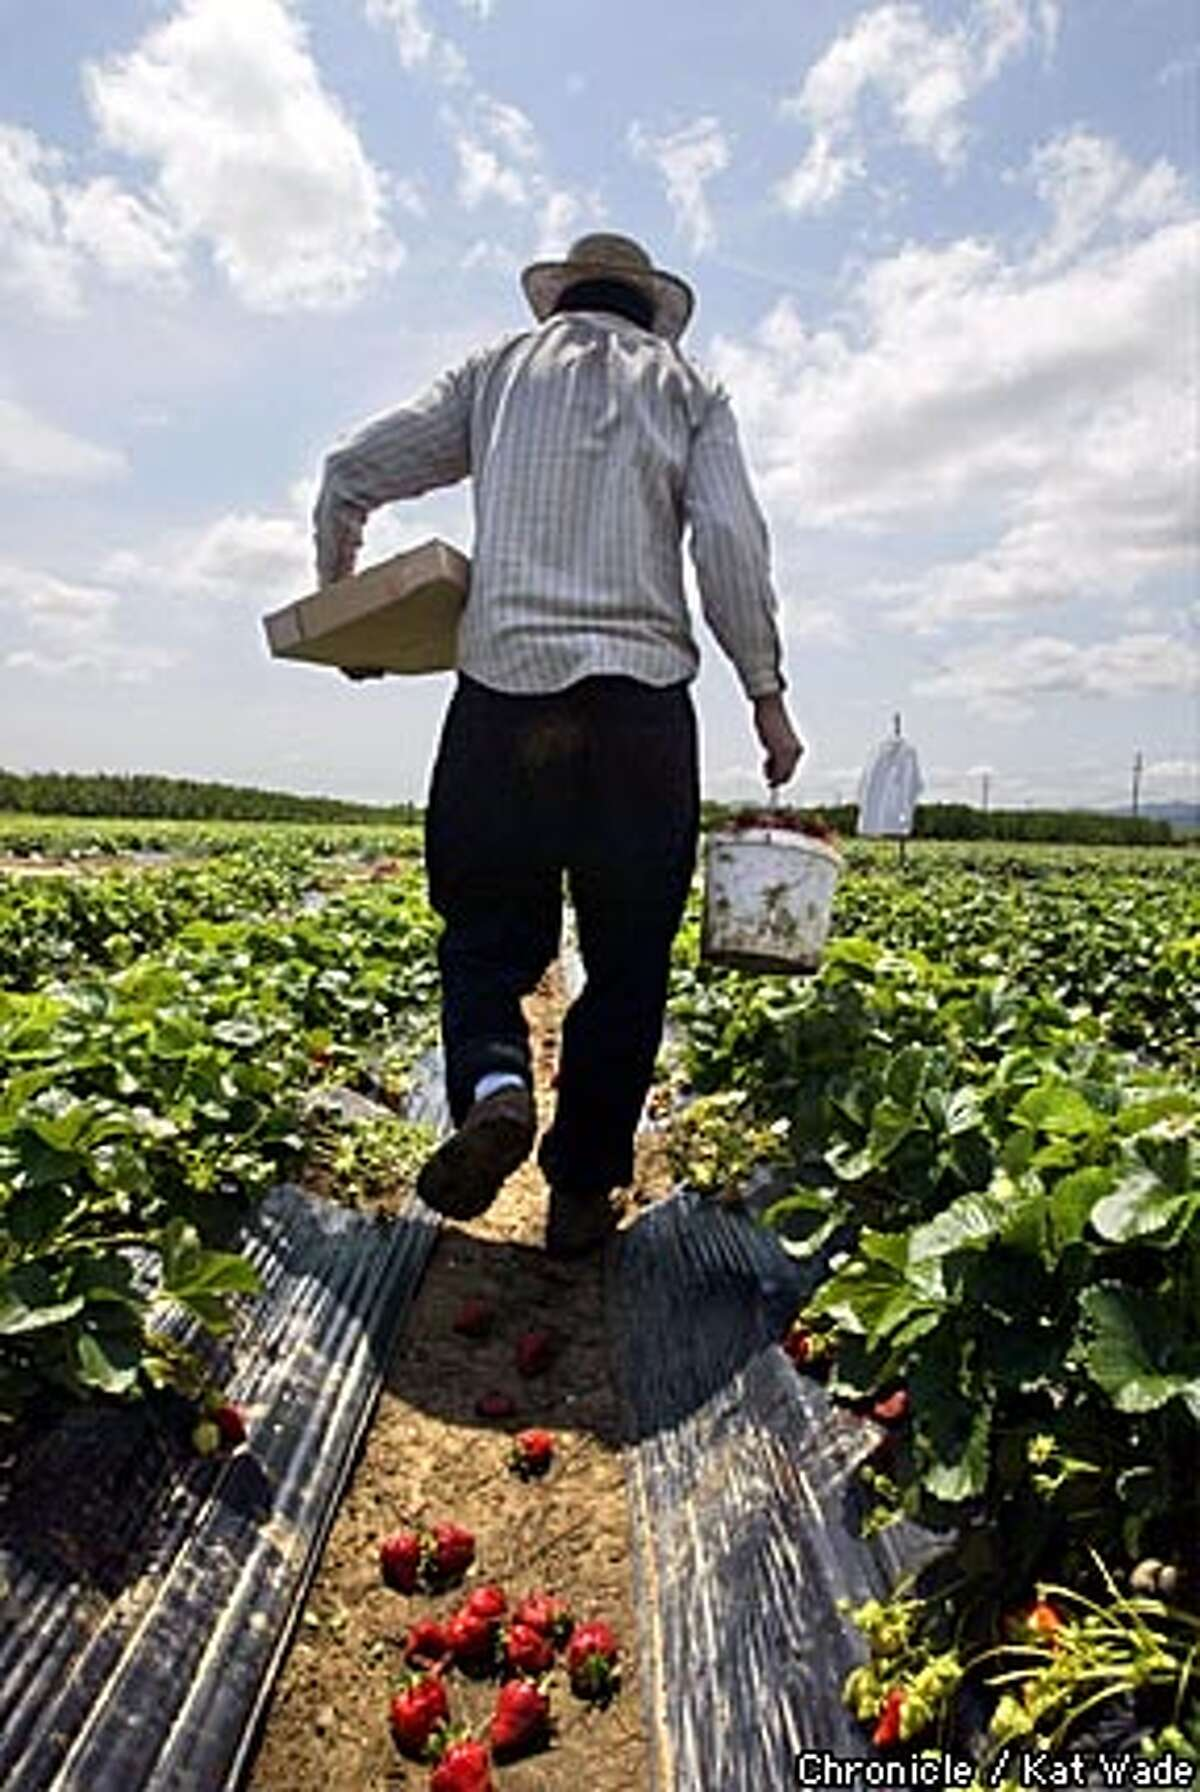 Felimon (CQ) Perez carries freshly picked strawberries from the Chan Farm's strawberry field on Walnut Blvd, where the public can come to pick their own berries. Bay Area farms that are open to the public are becoming similar to wineries, a gourmet outing with, u-pick fruit, public tours and retail on 05/05/03 in Brentwood. KAT WADE / The Chronicle